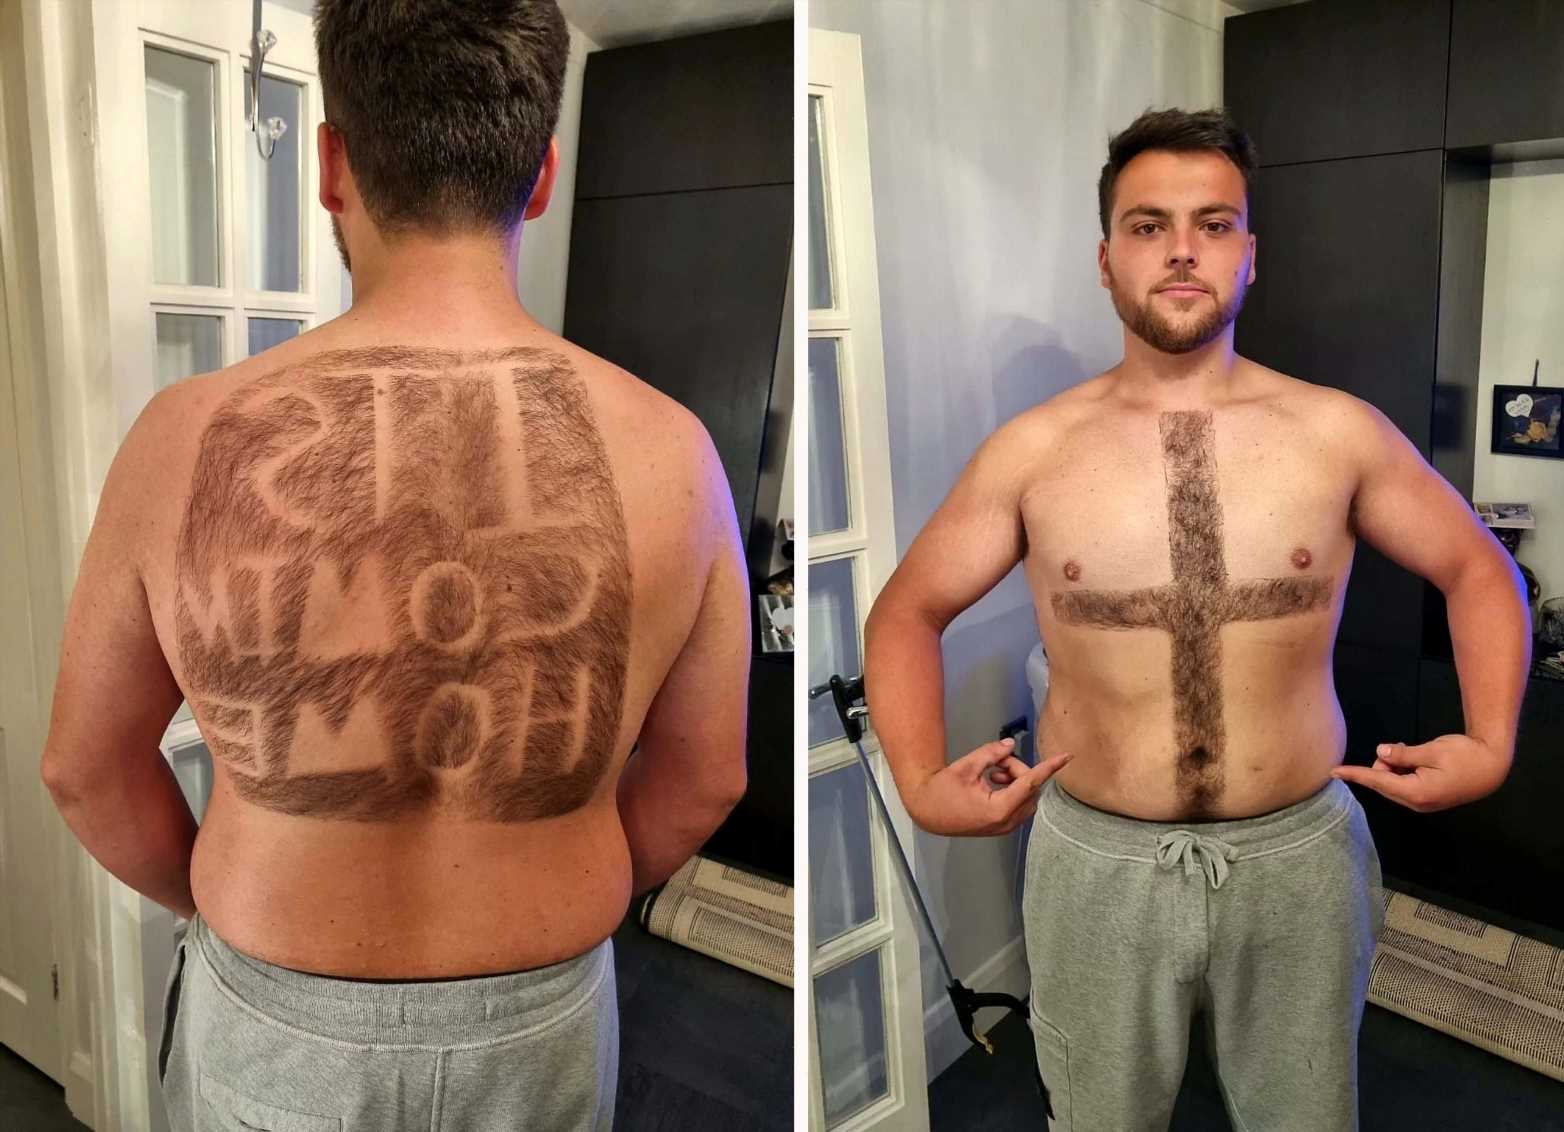 England fan shaves 'It's Coming Home' into his back hair and St George's cross on chest